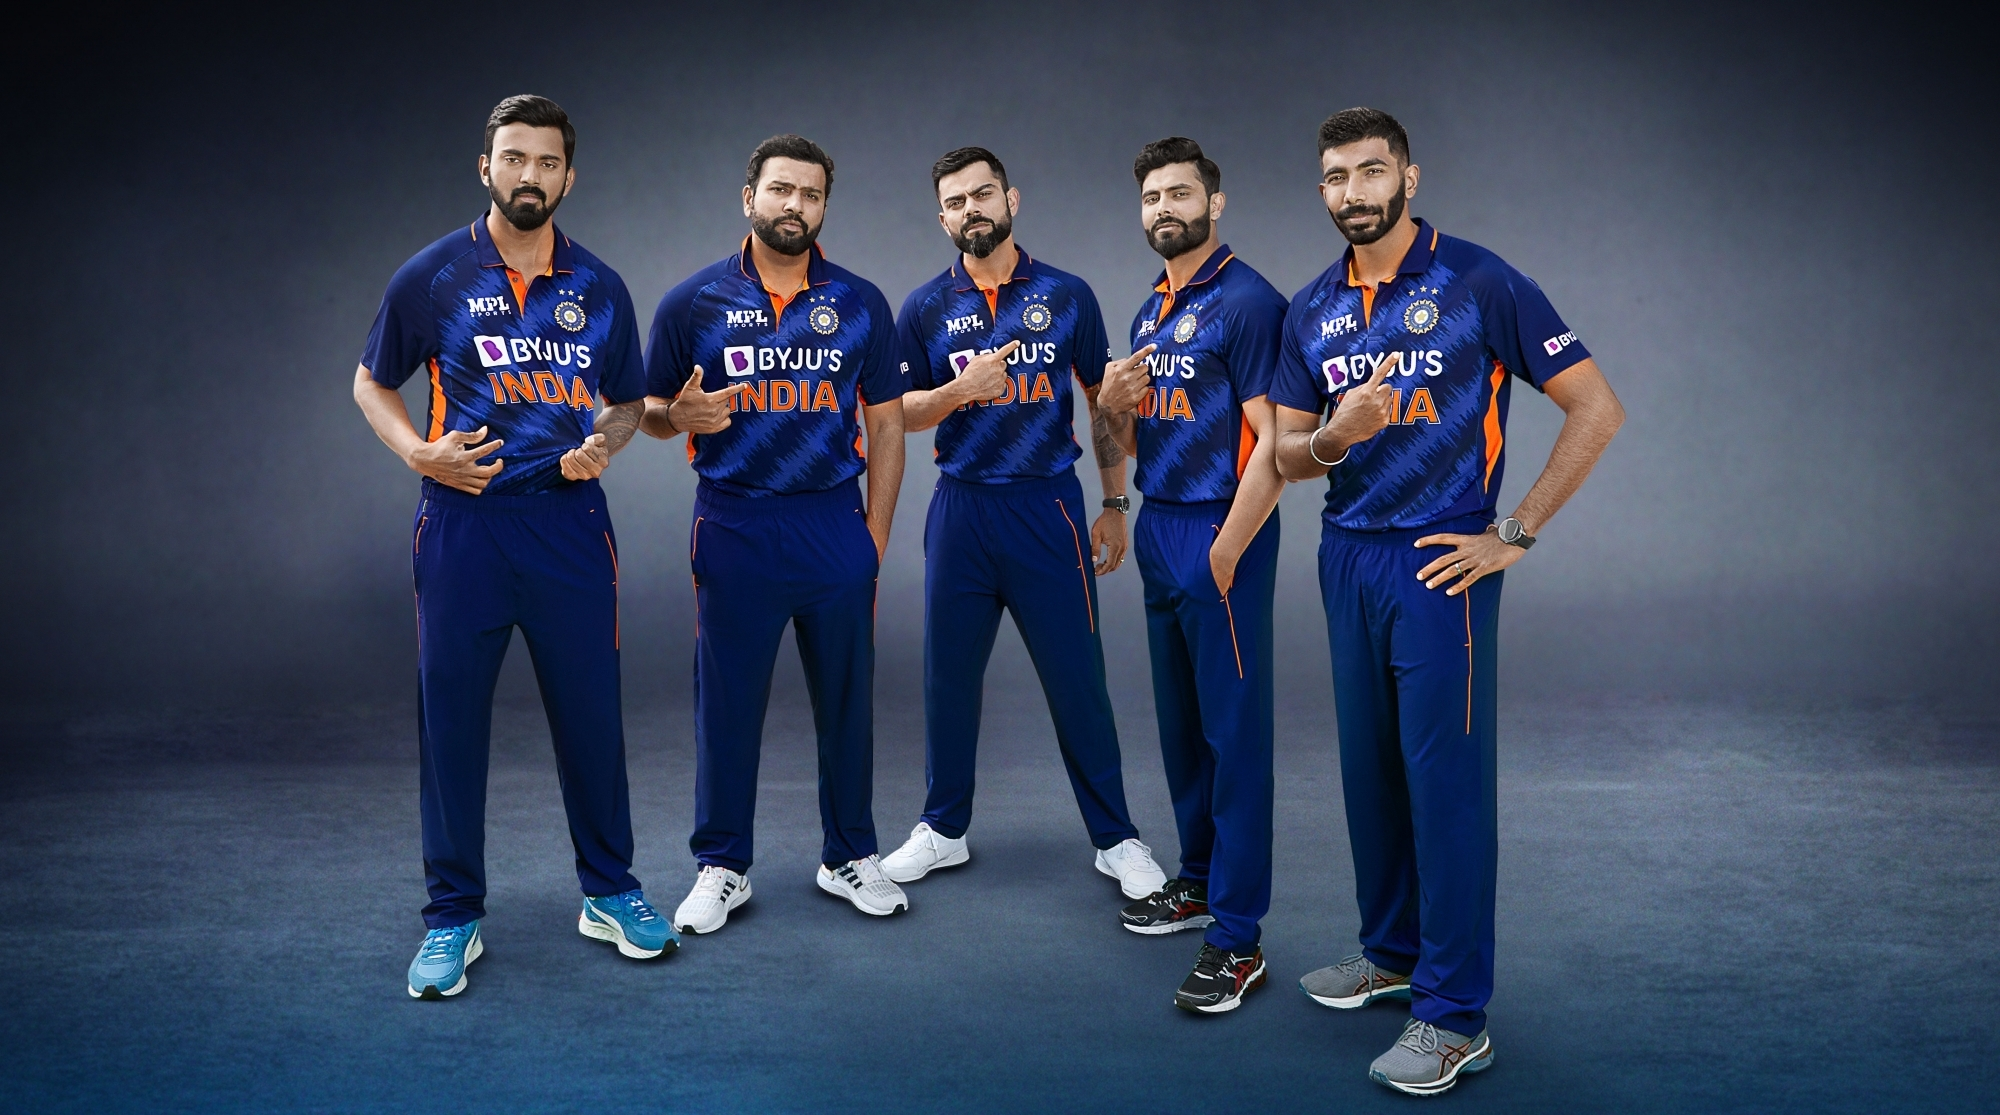 Fan-inspired Indian team jersey unveiled ahead of T20 World Cup